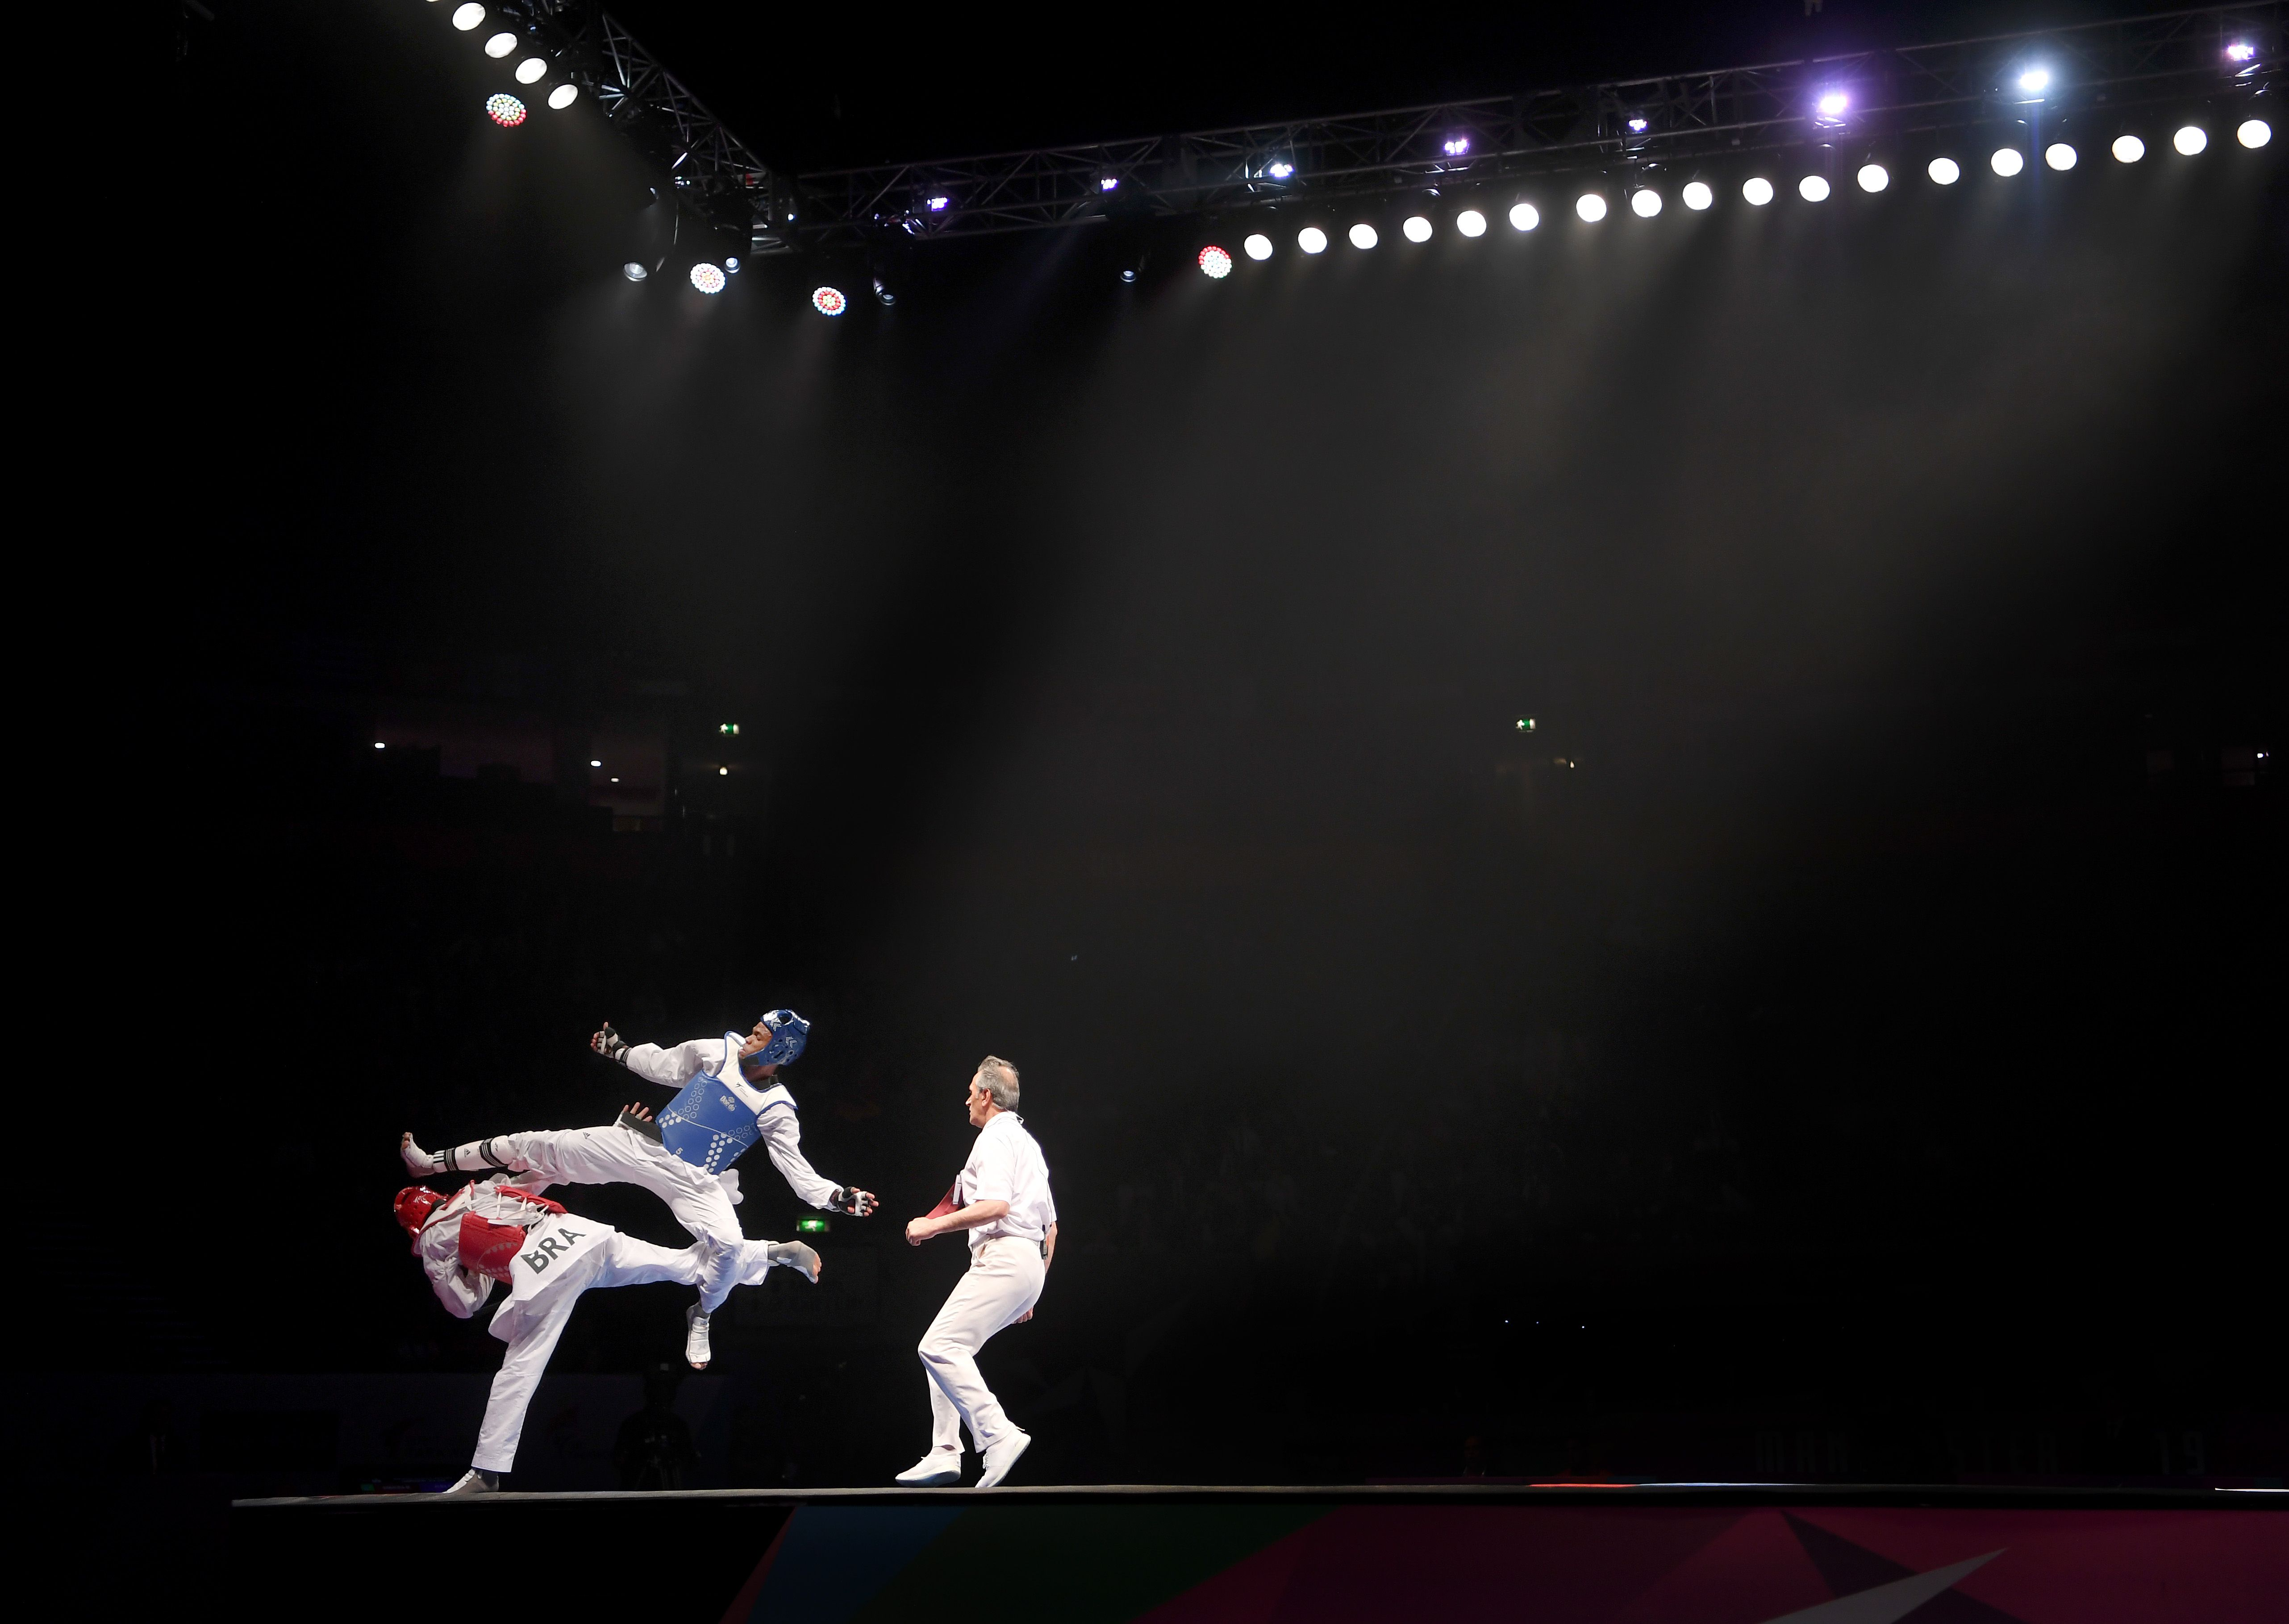 Competitors square off at the World Taekwondo Championships